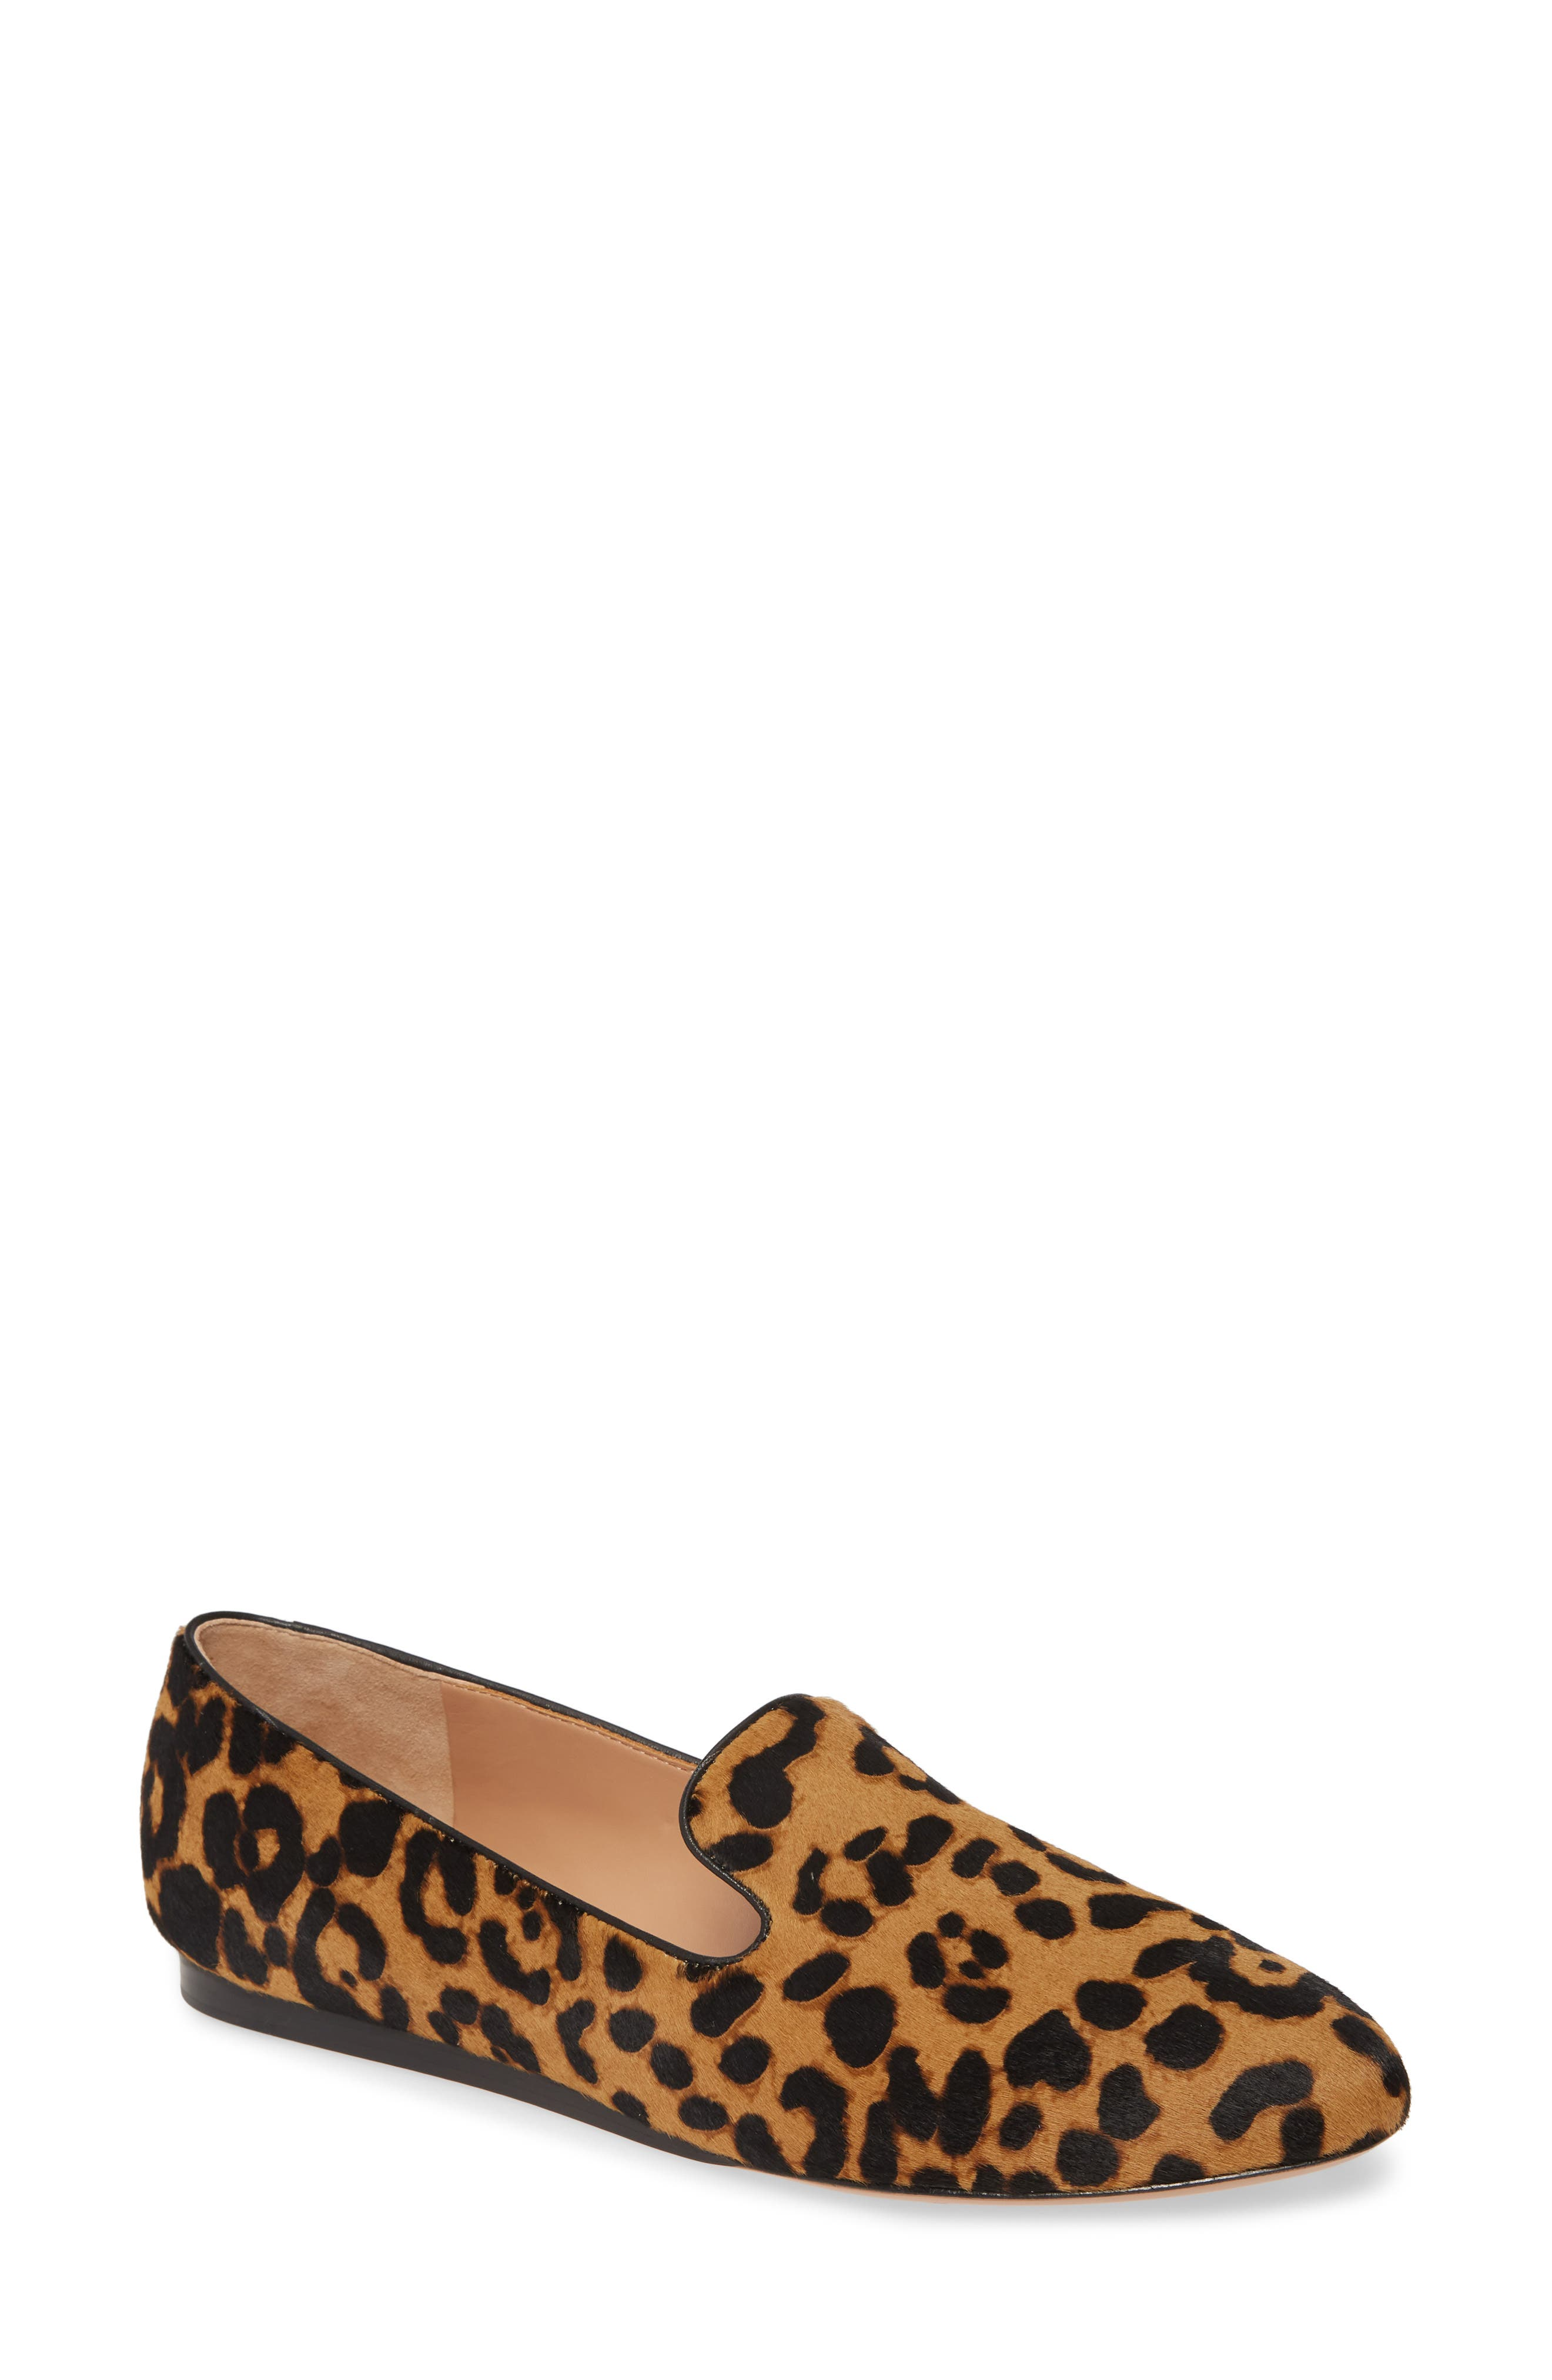 Veronica Beard Flats Griffin Genuine Calf Hair Loafer